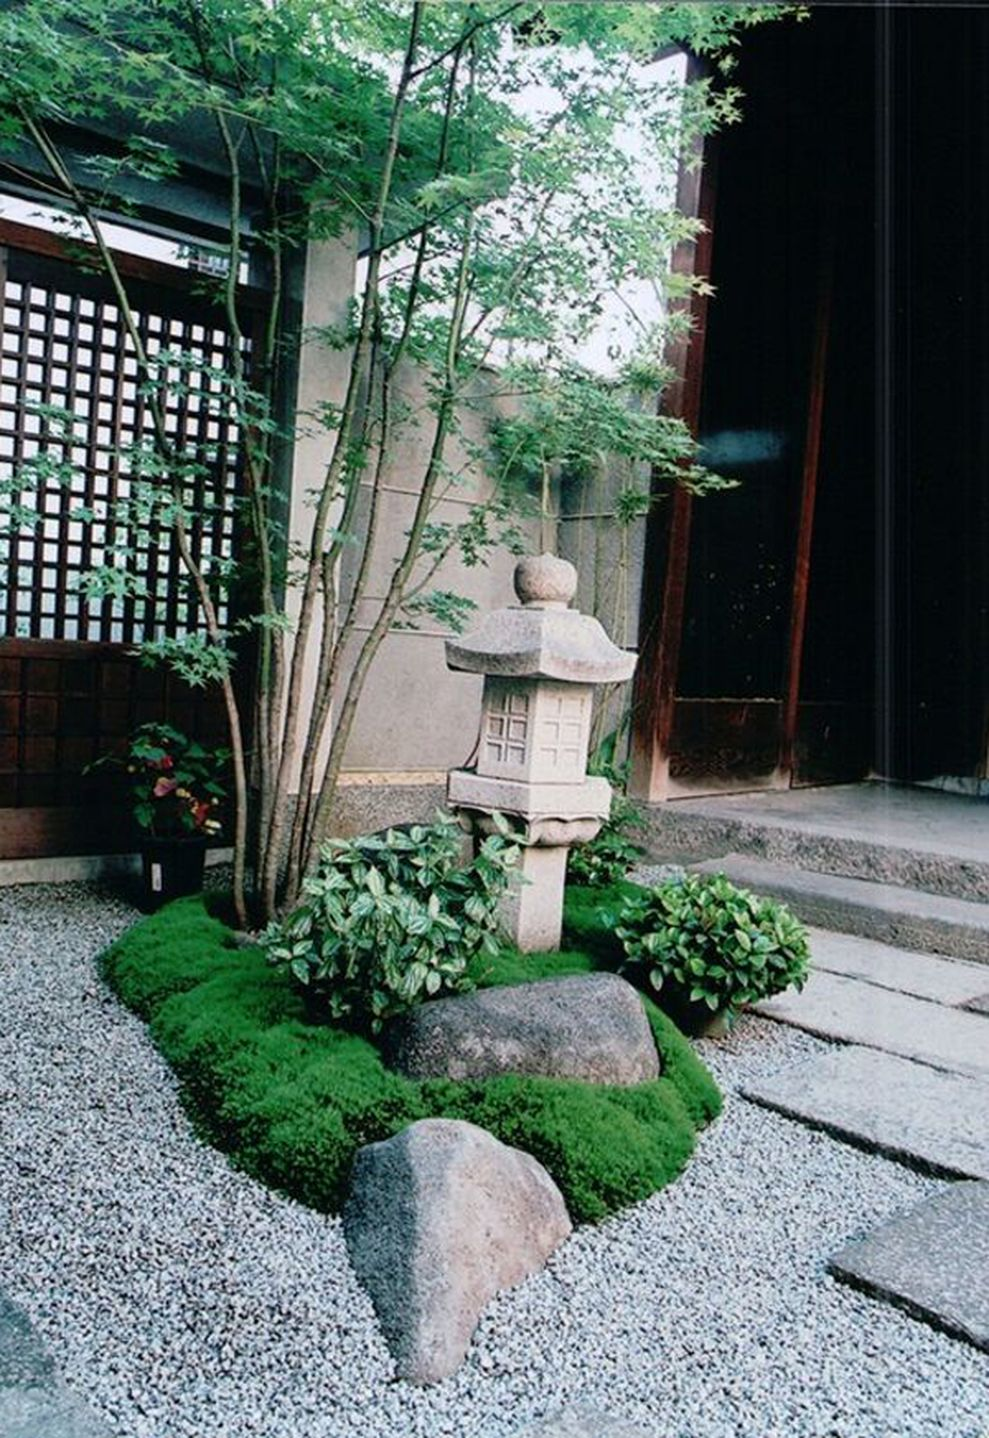 Inspiring small japanese garden design ideas 36 - ROUNDECOR